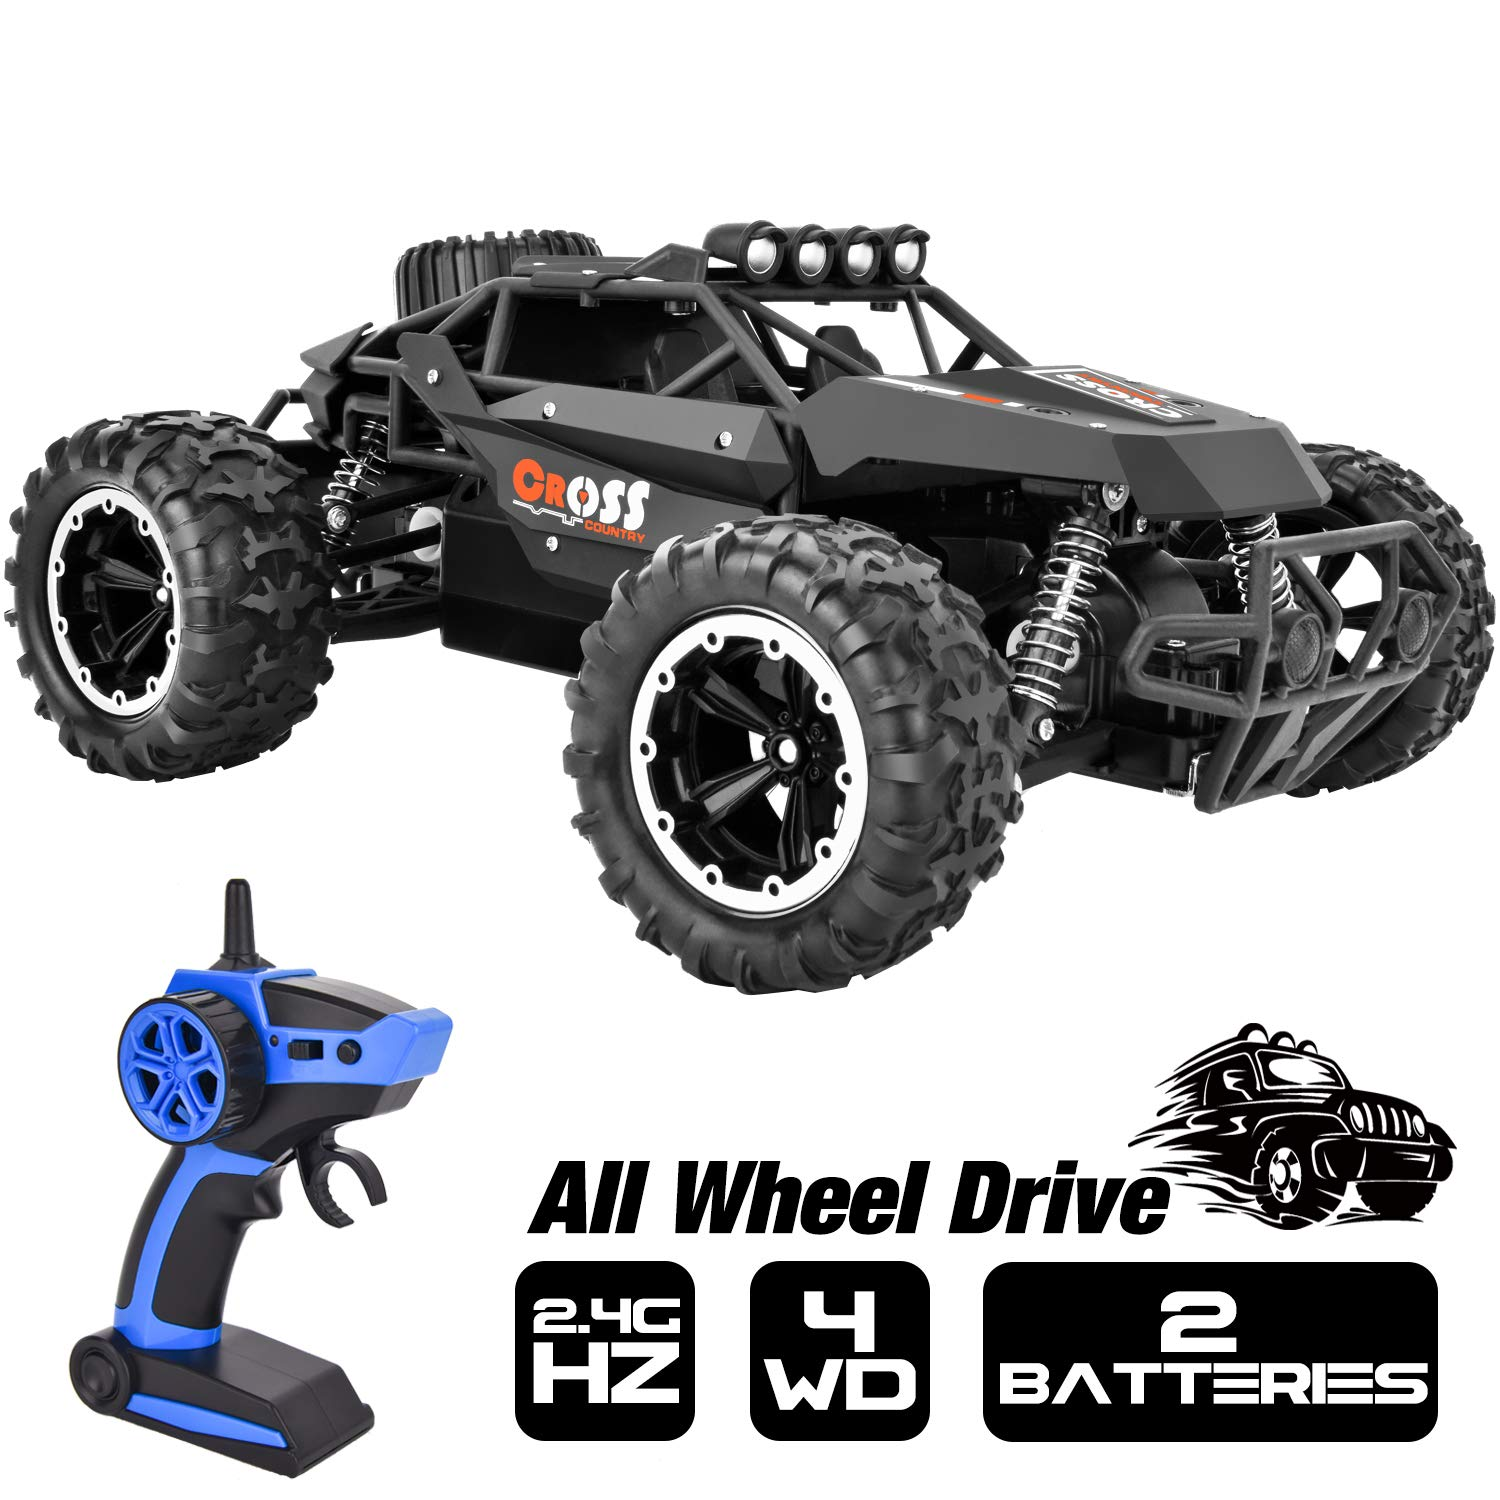 Rainbrace High Speed RC Cars for Boys 1//16 RC Truck Remote Control Car Off Road 4x4 RC Trucks for Kids with 2.4G Radio Control 2 Rechargeable Batteries